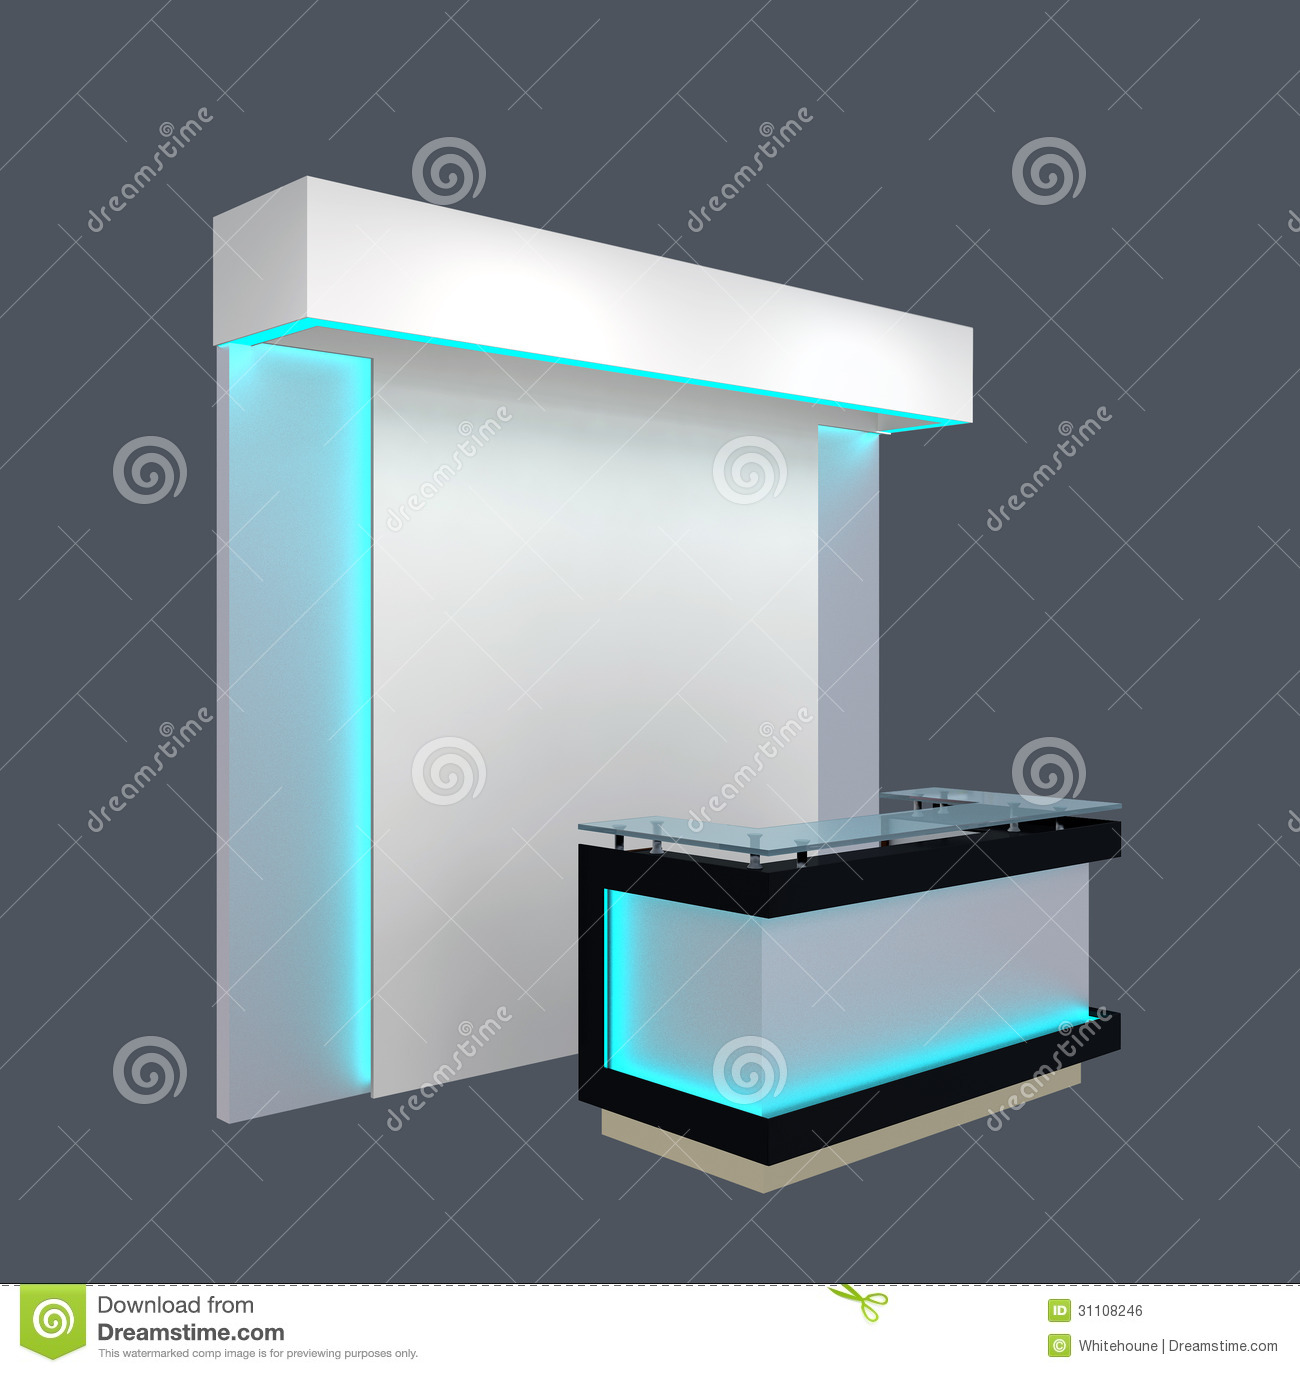 Modern Exhibition Stand Vector : Exhibition module royalty free stock image